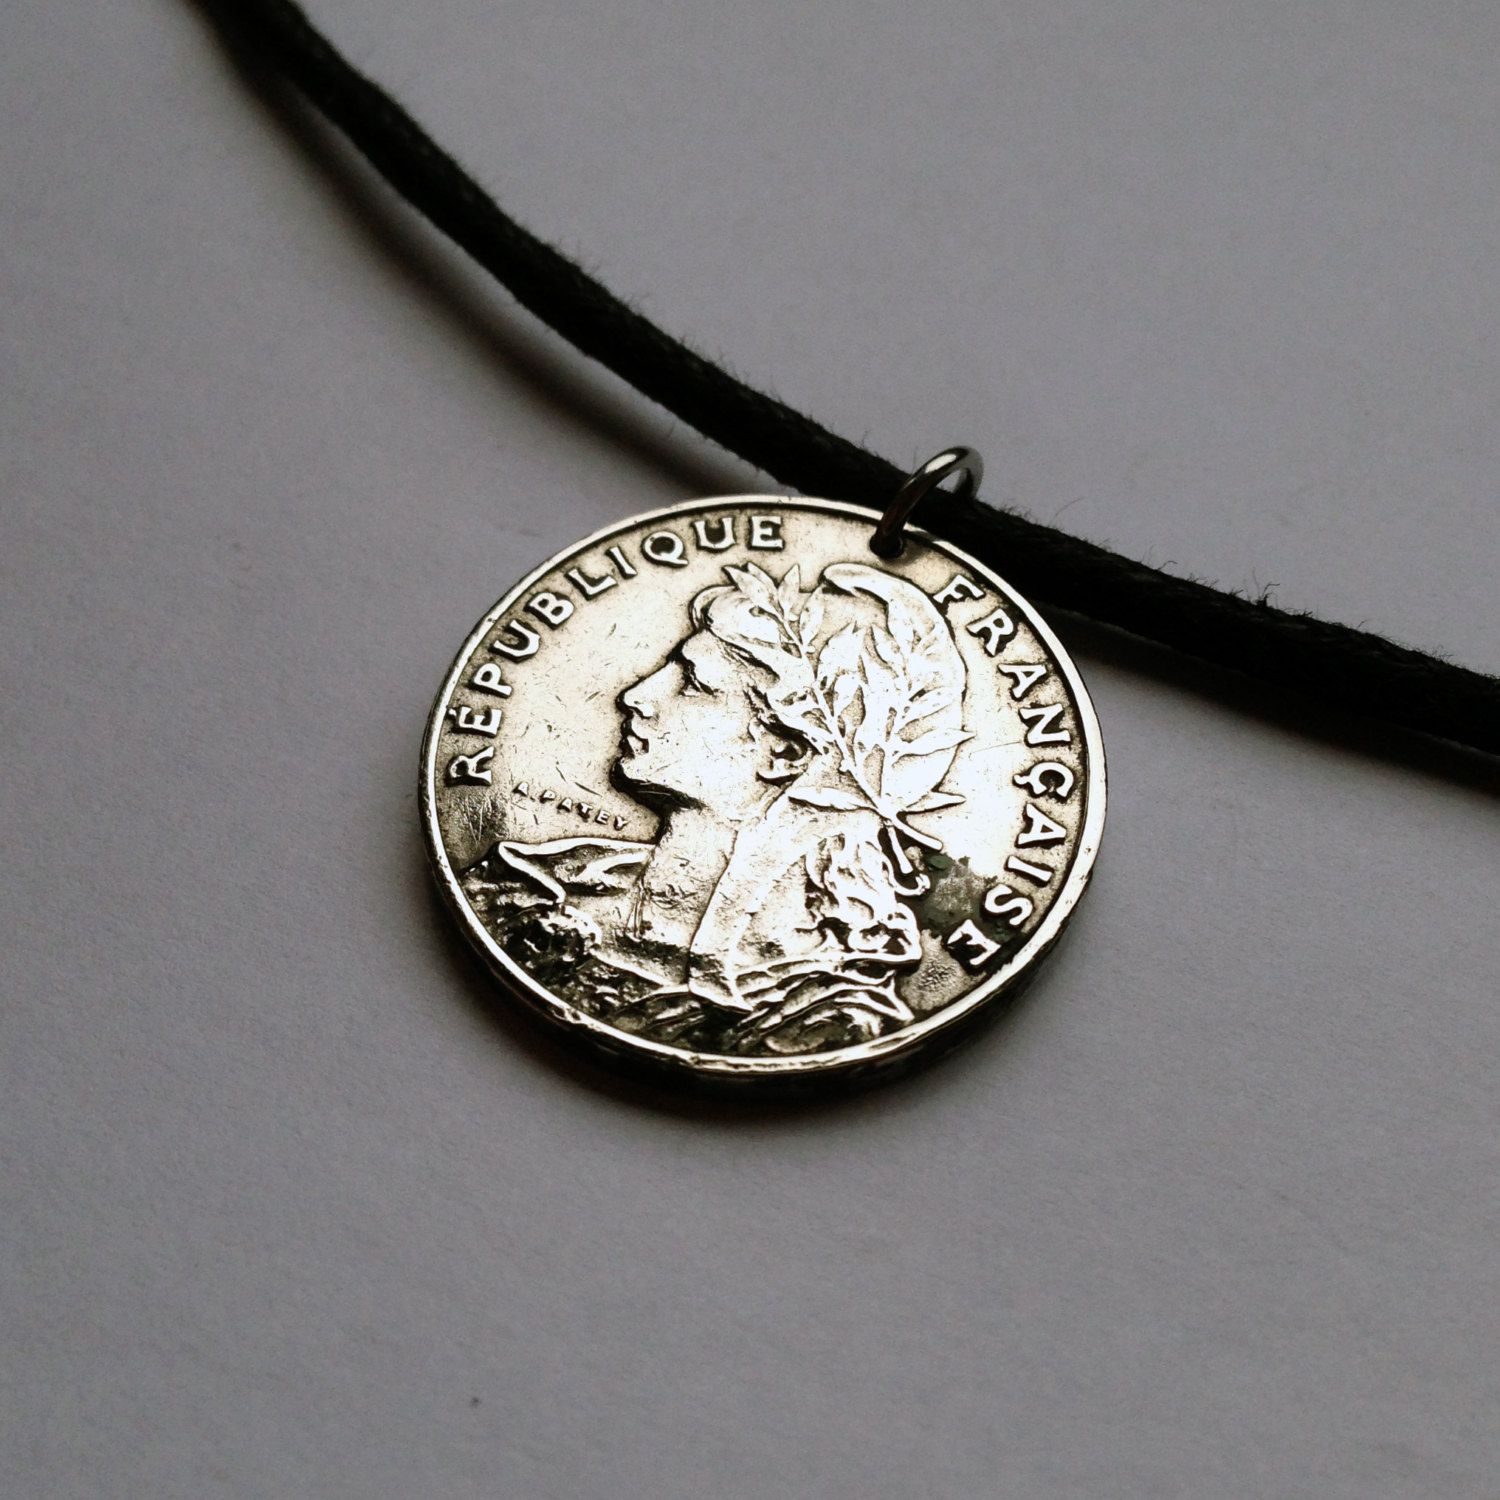 1903 France 25 centimes coin pendant charm necklace jewelry Marianne freedom hair woman French Lady Laureate liberty FRANÇAISE No.000797 by acnyCOINJEWELRY on Etsy